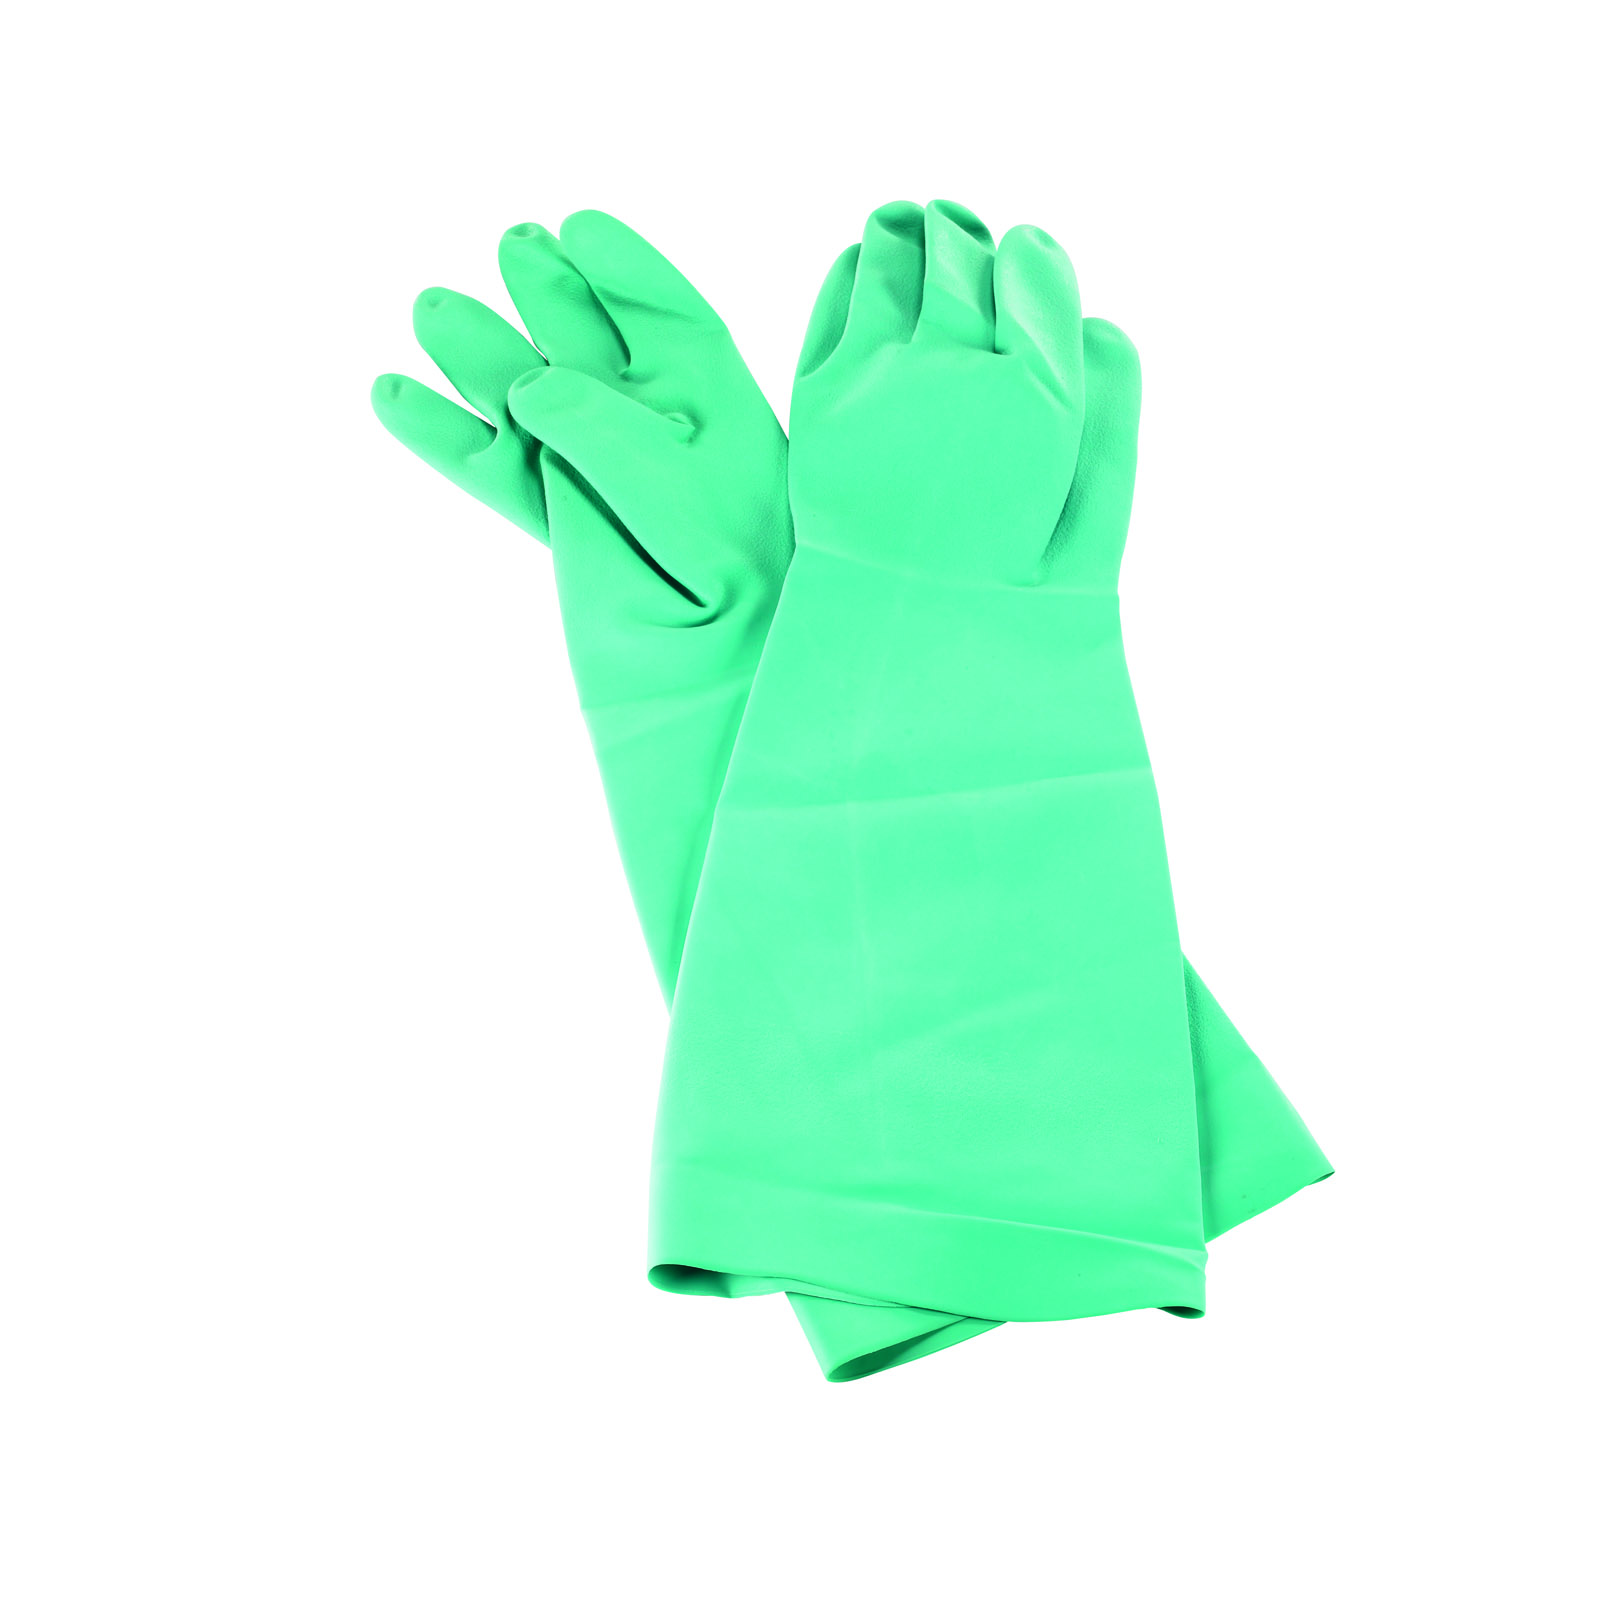 San Jamar 19NU-M gloves, dishwashing / cleaning